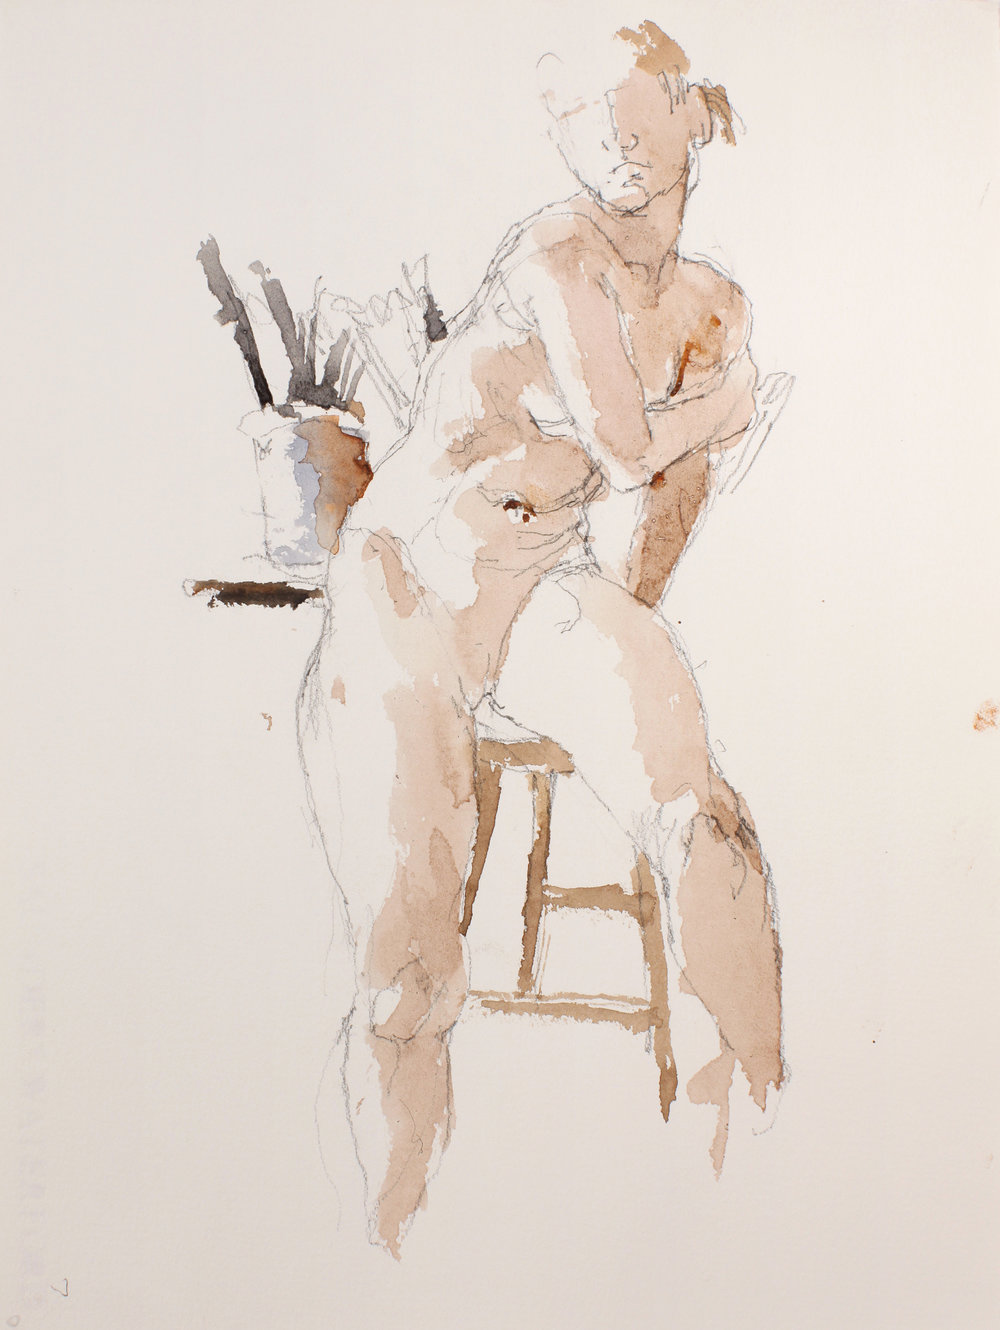 Nude Seated on Chair with Container of Brushes